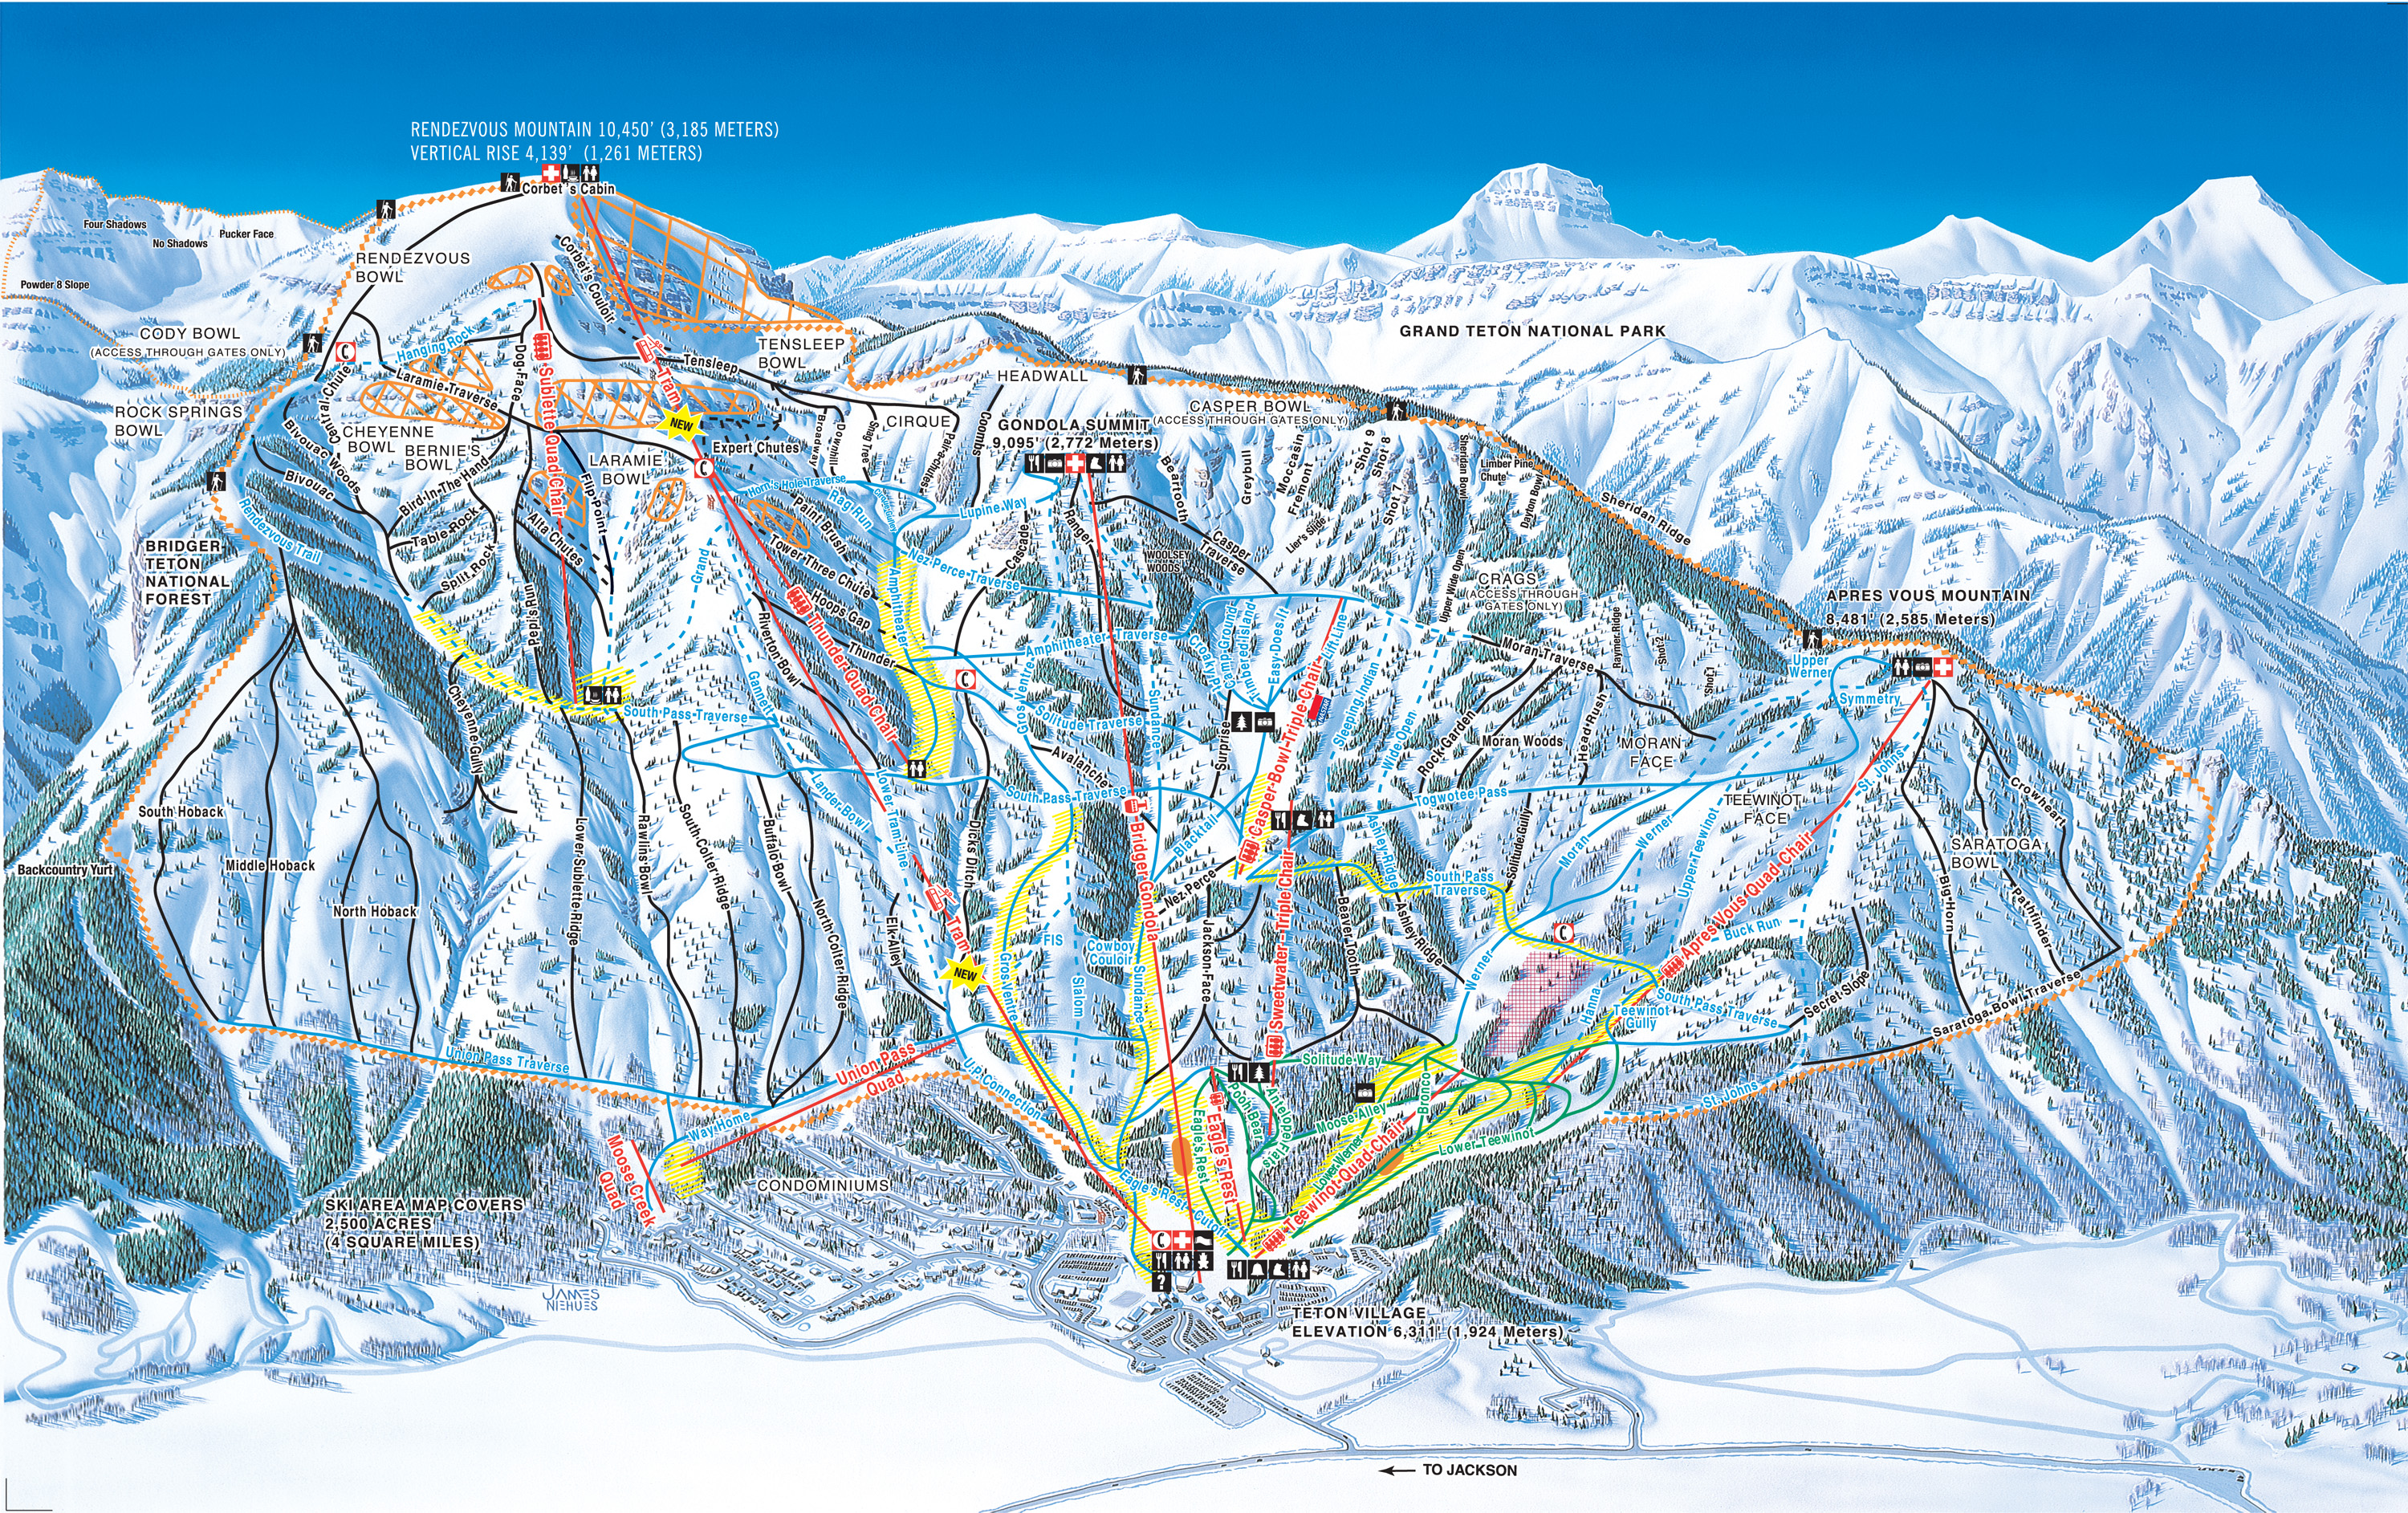 whistler lodging map with 151 on Ski Resort moreover Ski Resort besides Resort Photos Id99021 Snowboarding In Summer On Horstman Glacier On Black b Mountain as well Vail in addition Trail Maps.